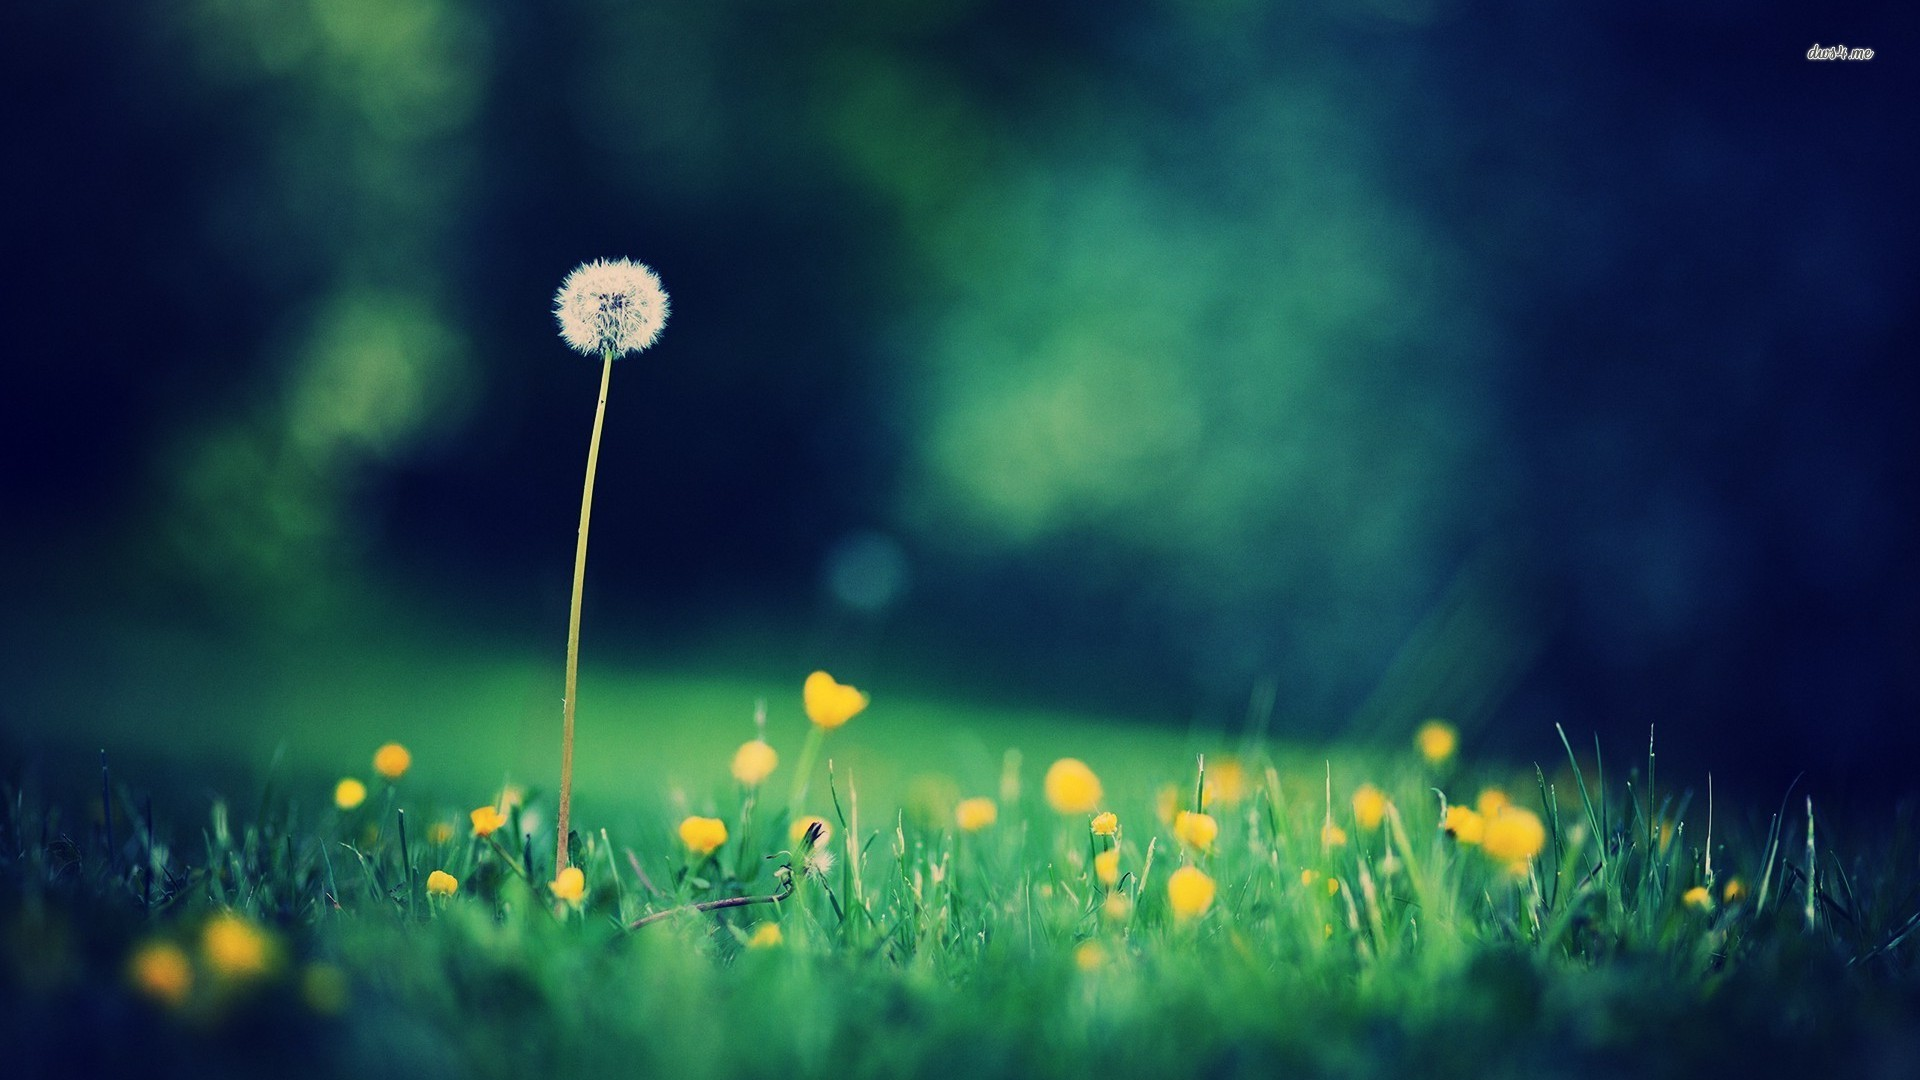 ... Dandelions wallpaper 1920x1080 ...